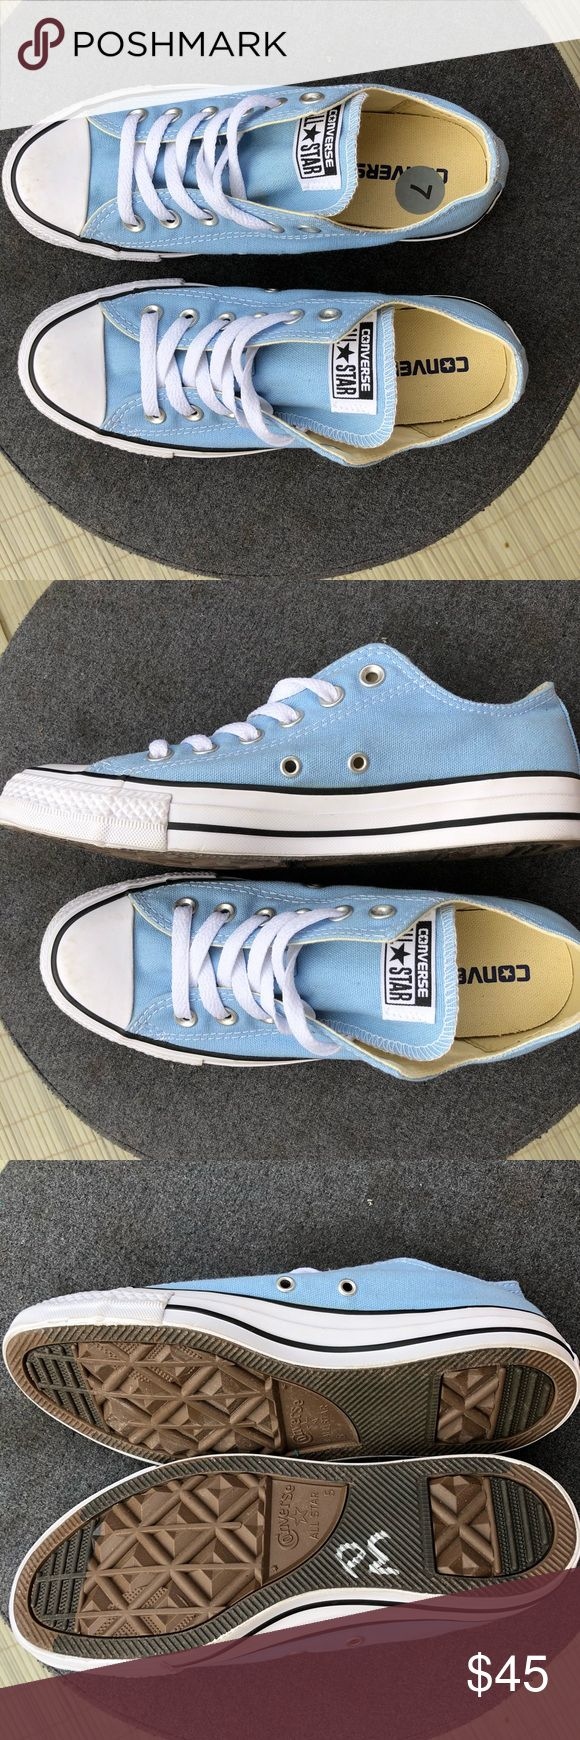 Converse • women's size 7 baby blue sneakers Brand new and never worn! Baby blue converse in women's 7! Converse Shoes Sneakers